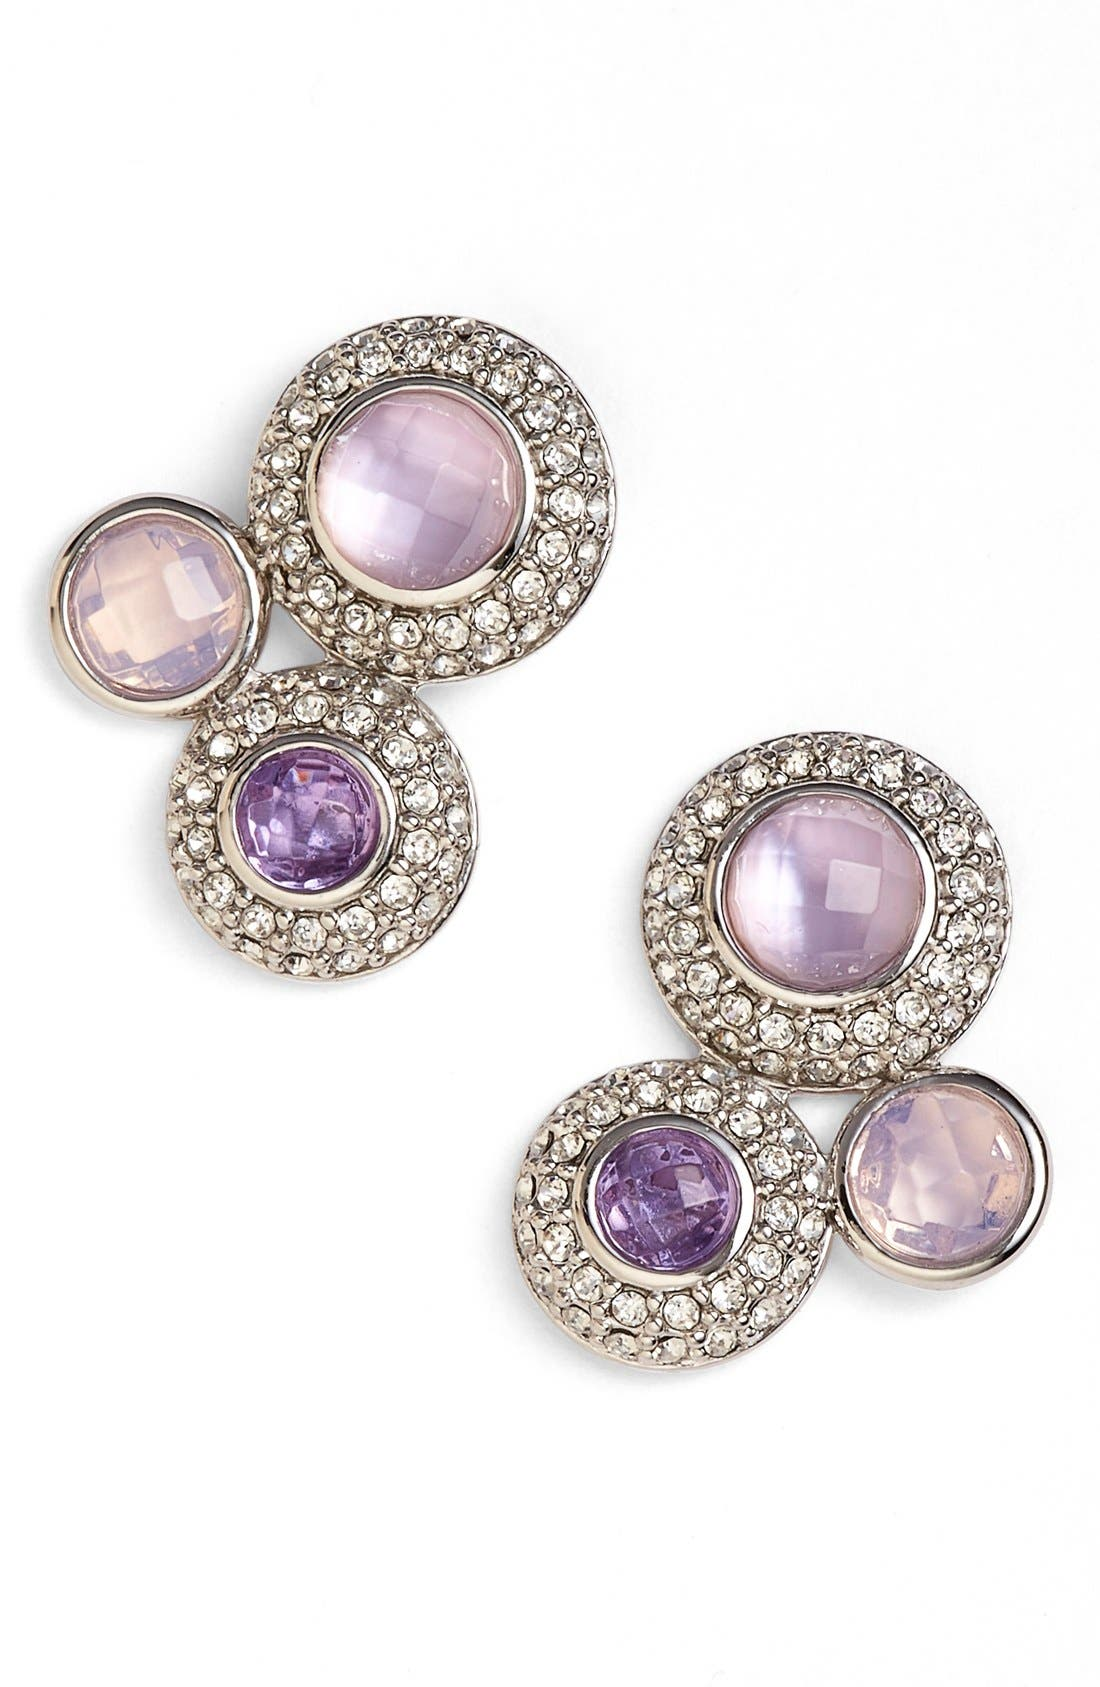 Main Image - Judith Jack Jeweled Cluster Stud Earrings